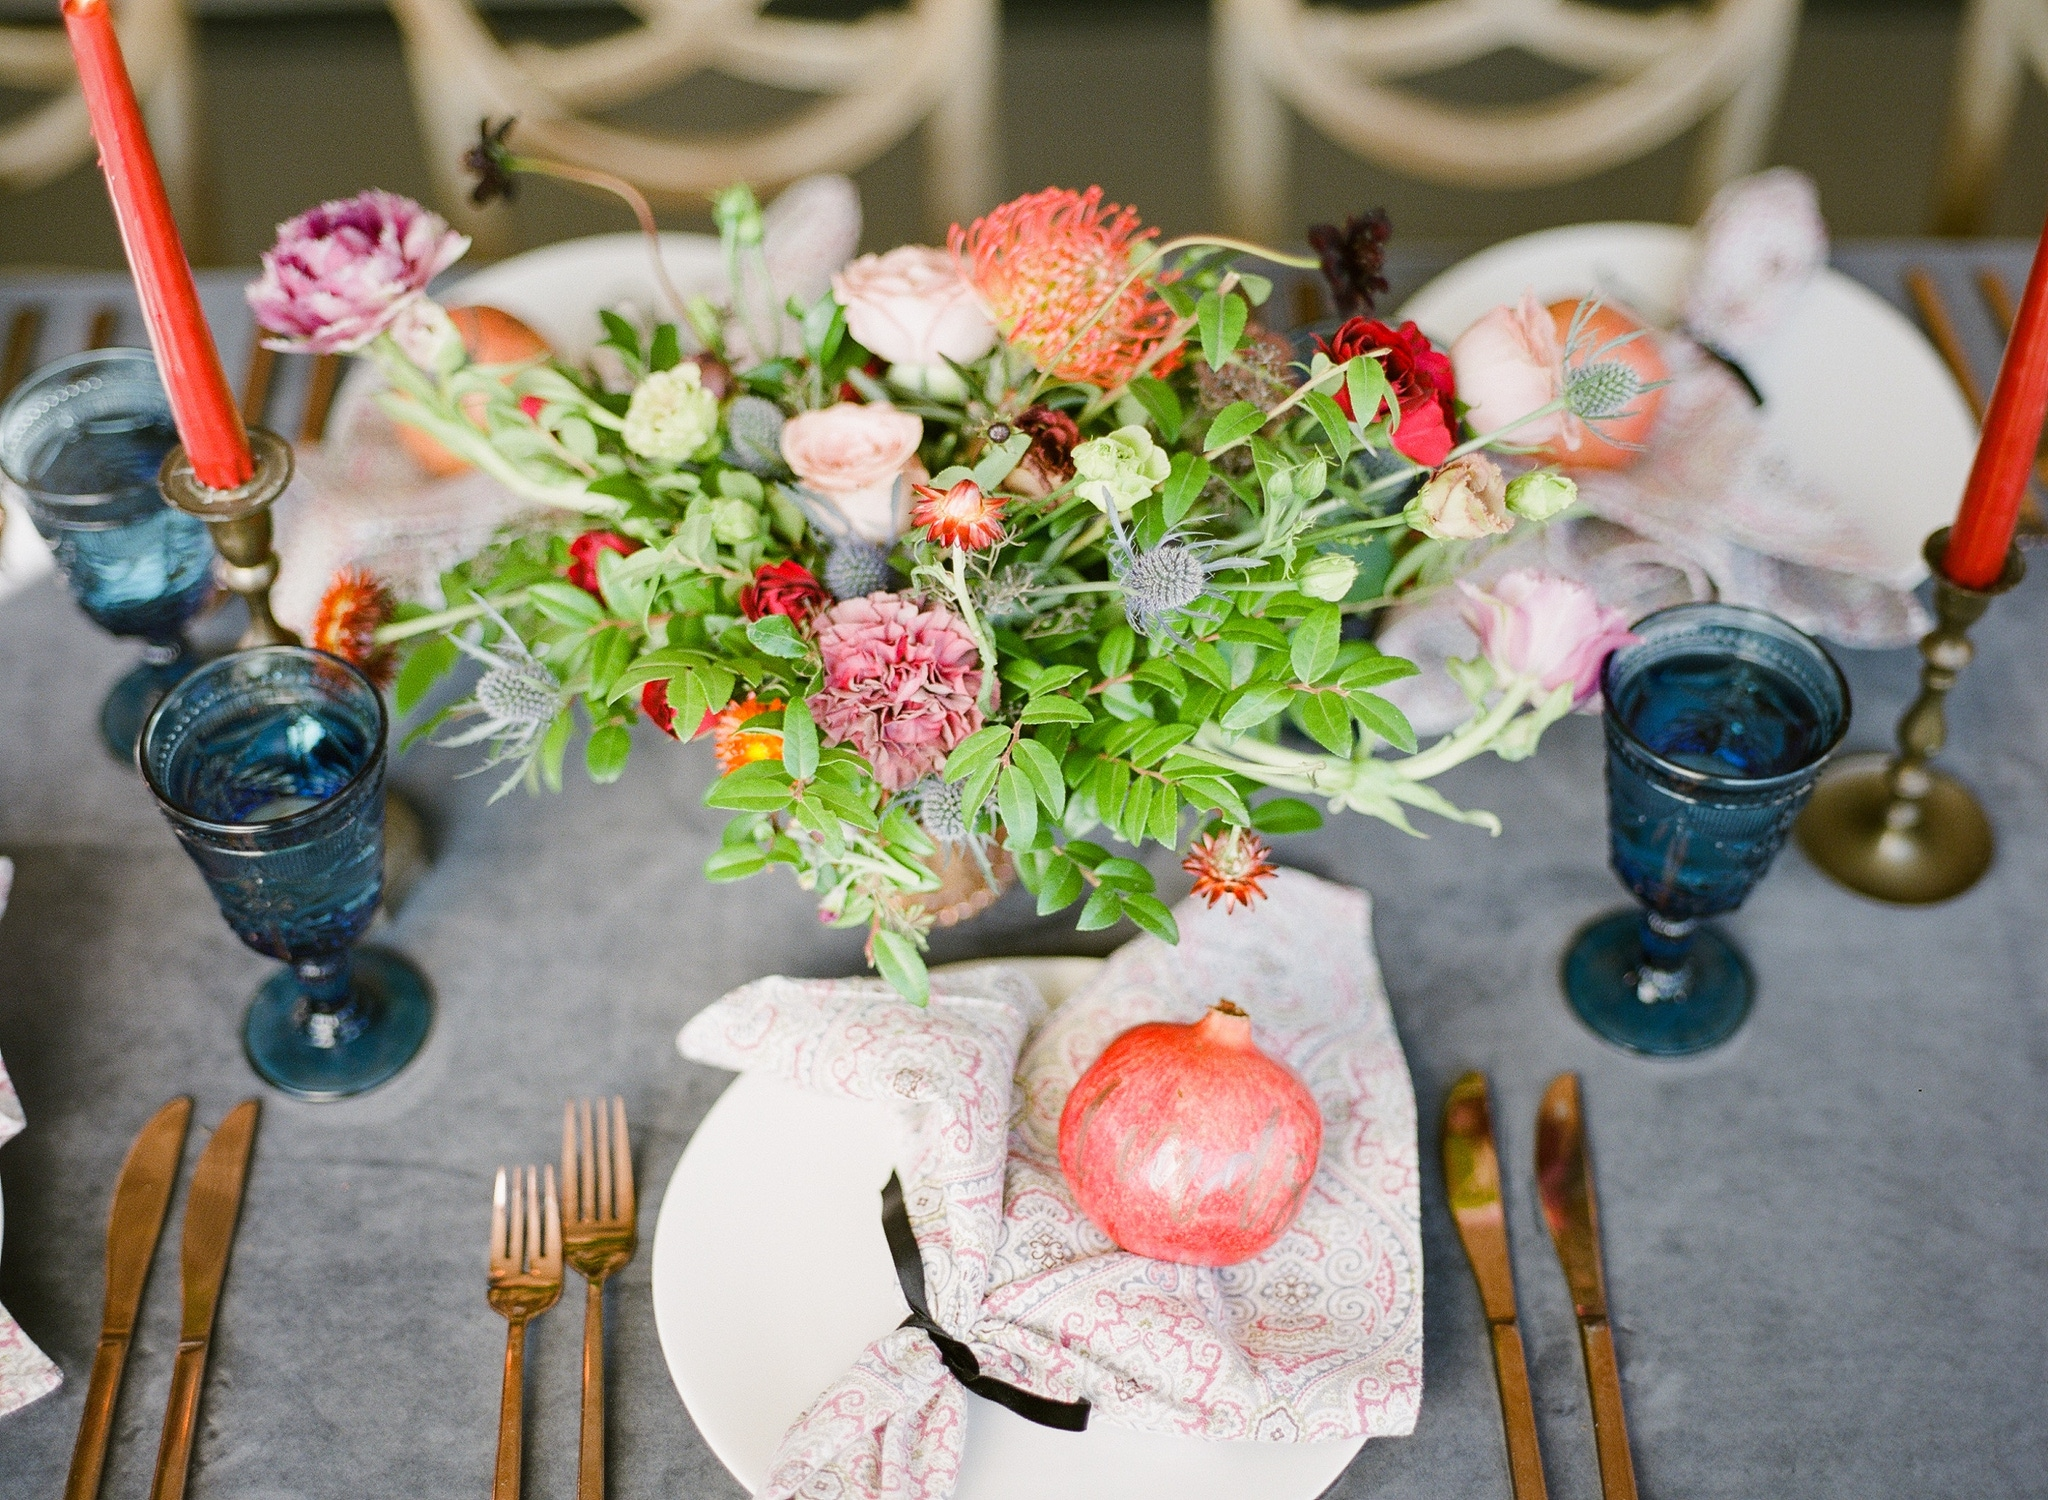 Orange, green and white place setting